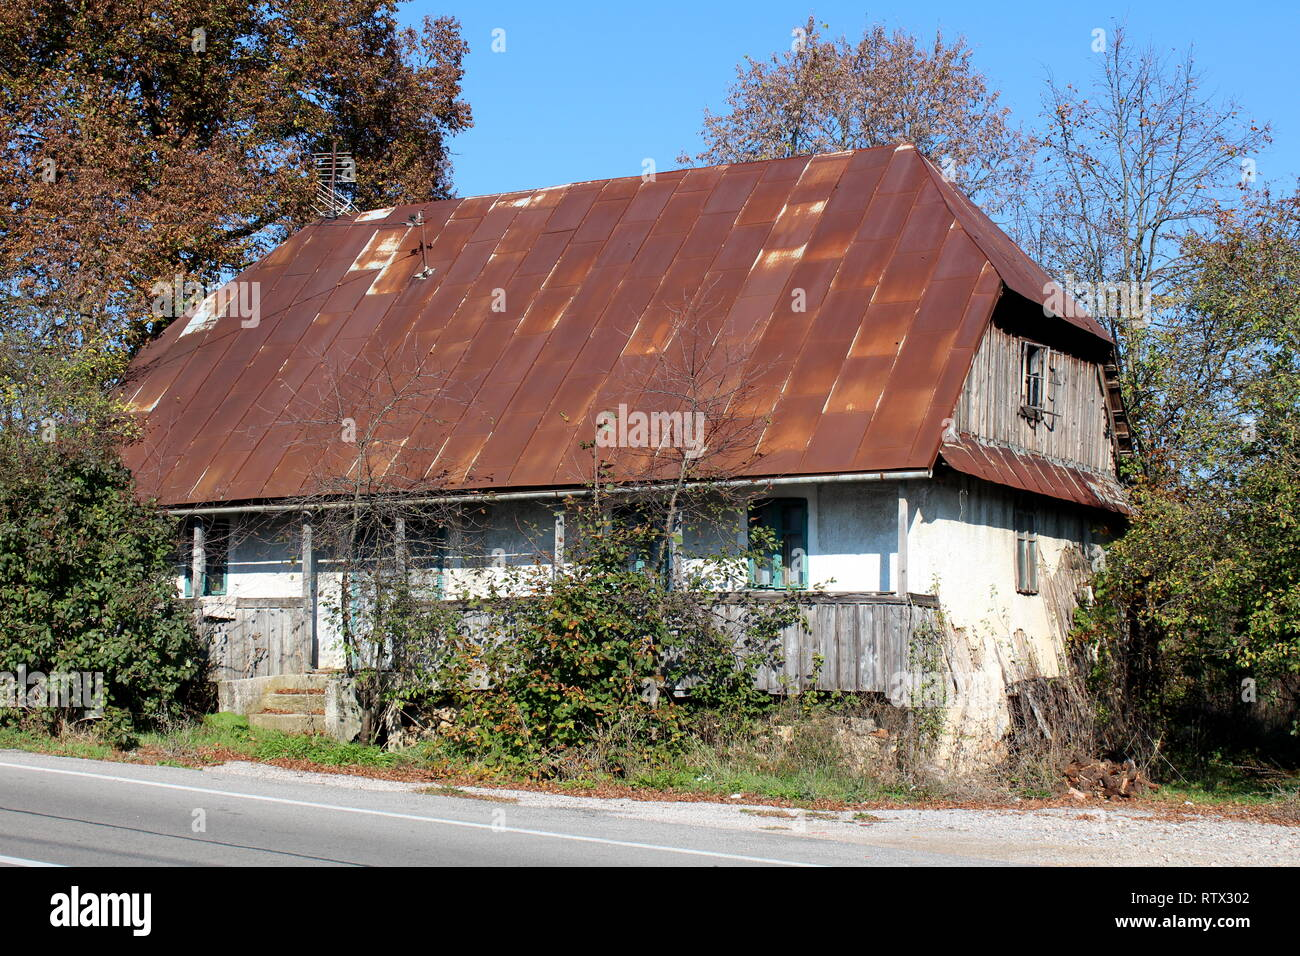 Rusted Roof Stock Photos Amp Rusted Roof Stock Images Alamy